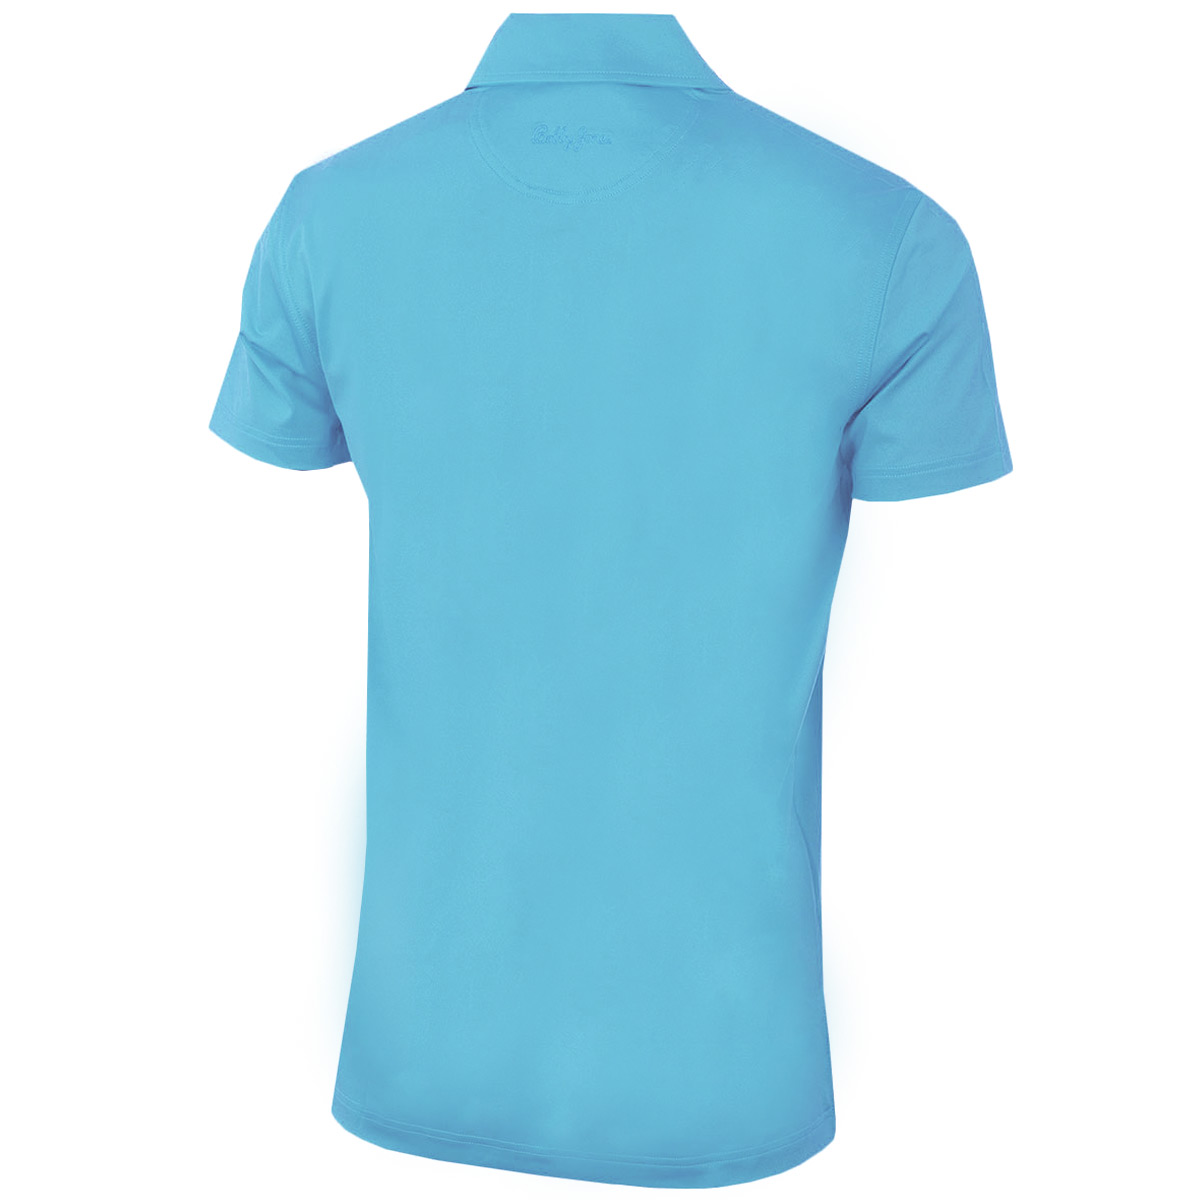 Bobby-Jones-Mens-XH2O-Perf-Solid-Jersey-TF-Golf-Polo-Shirt-69-OFF-RRP thumbnail 3